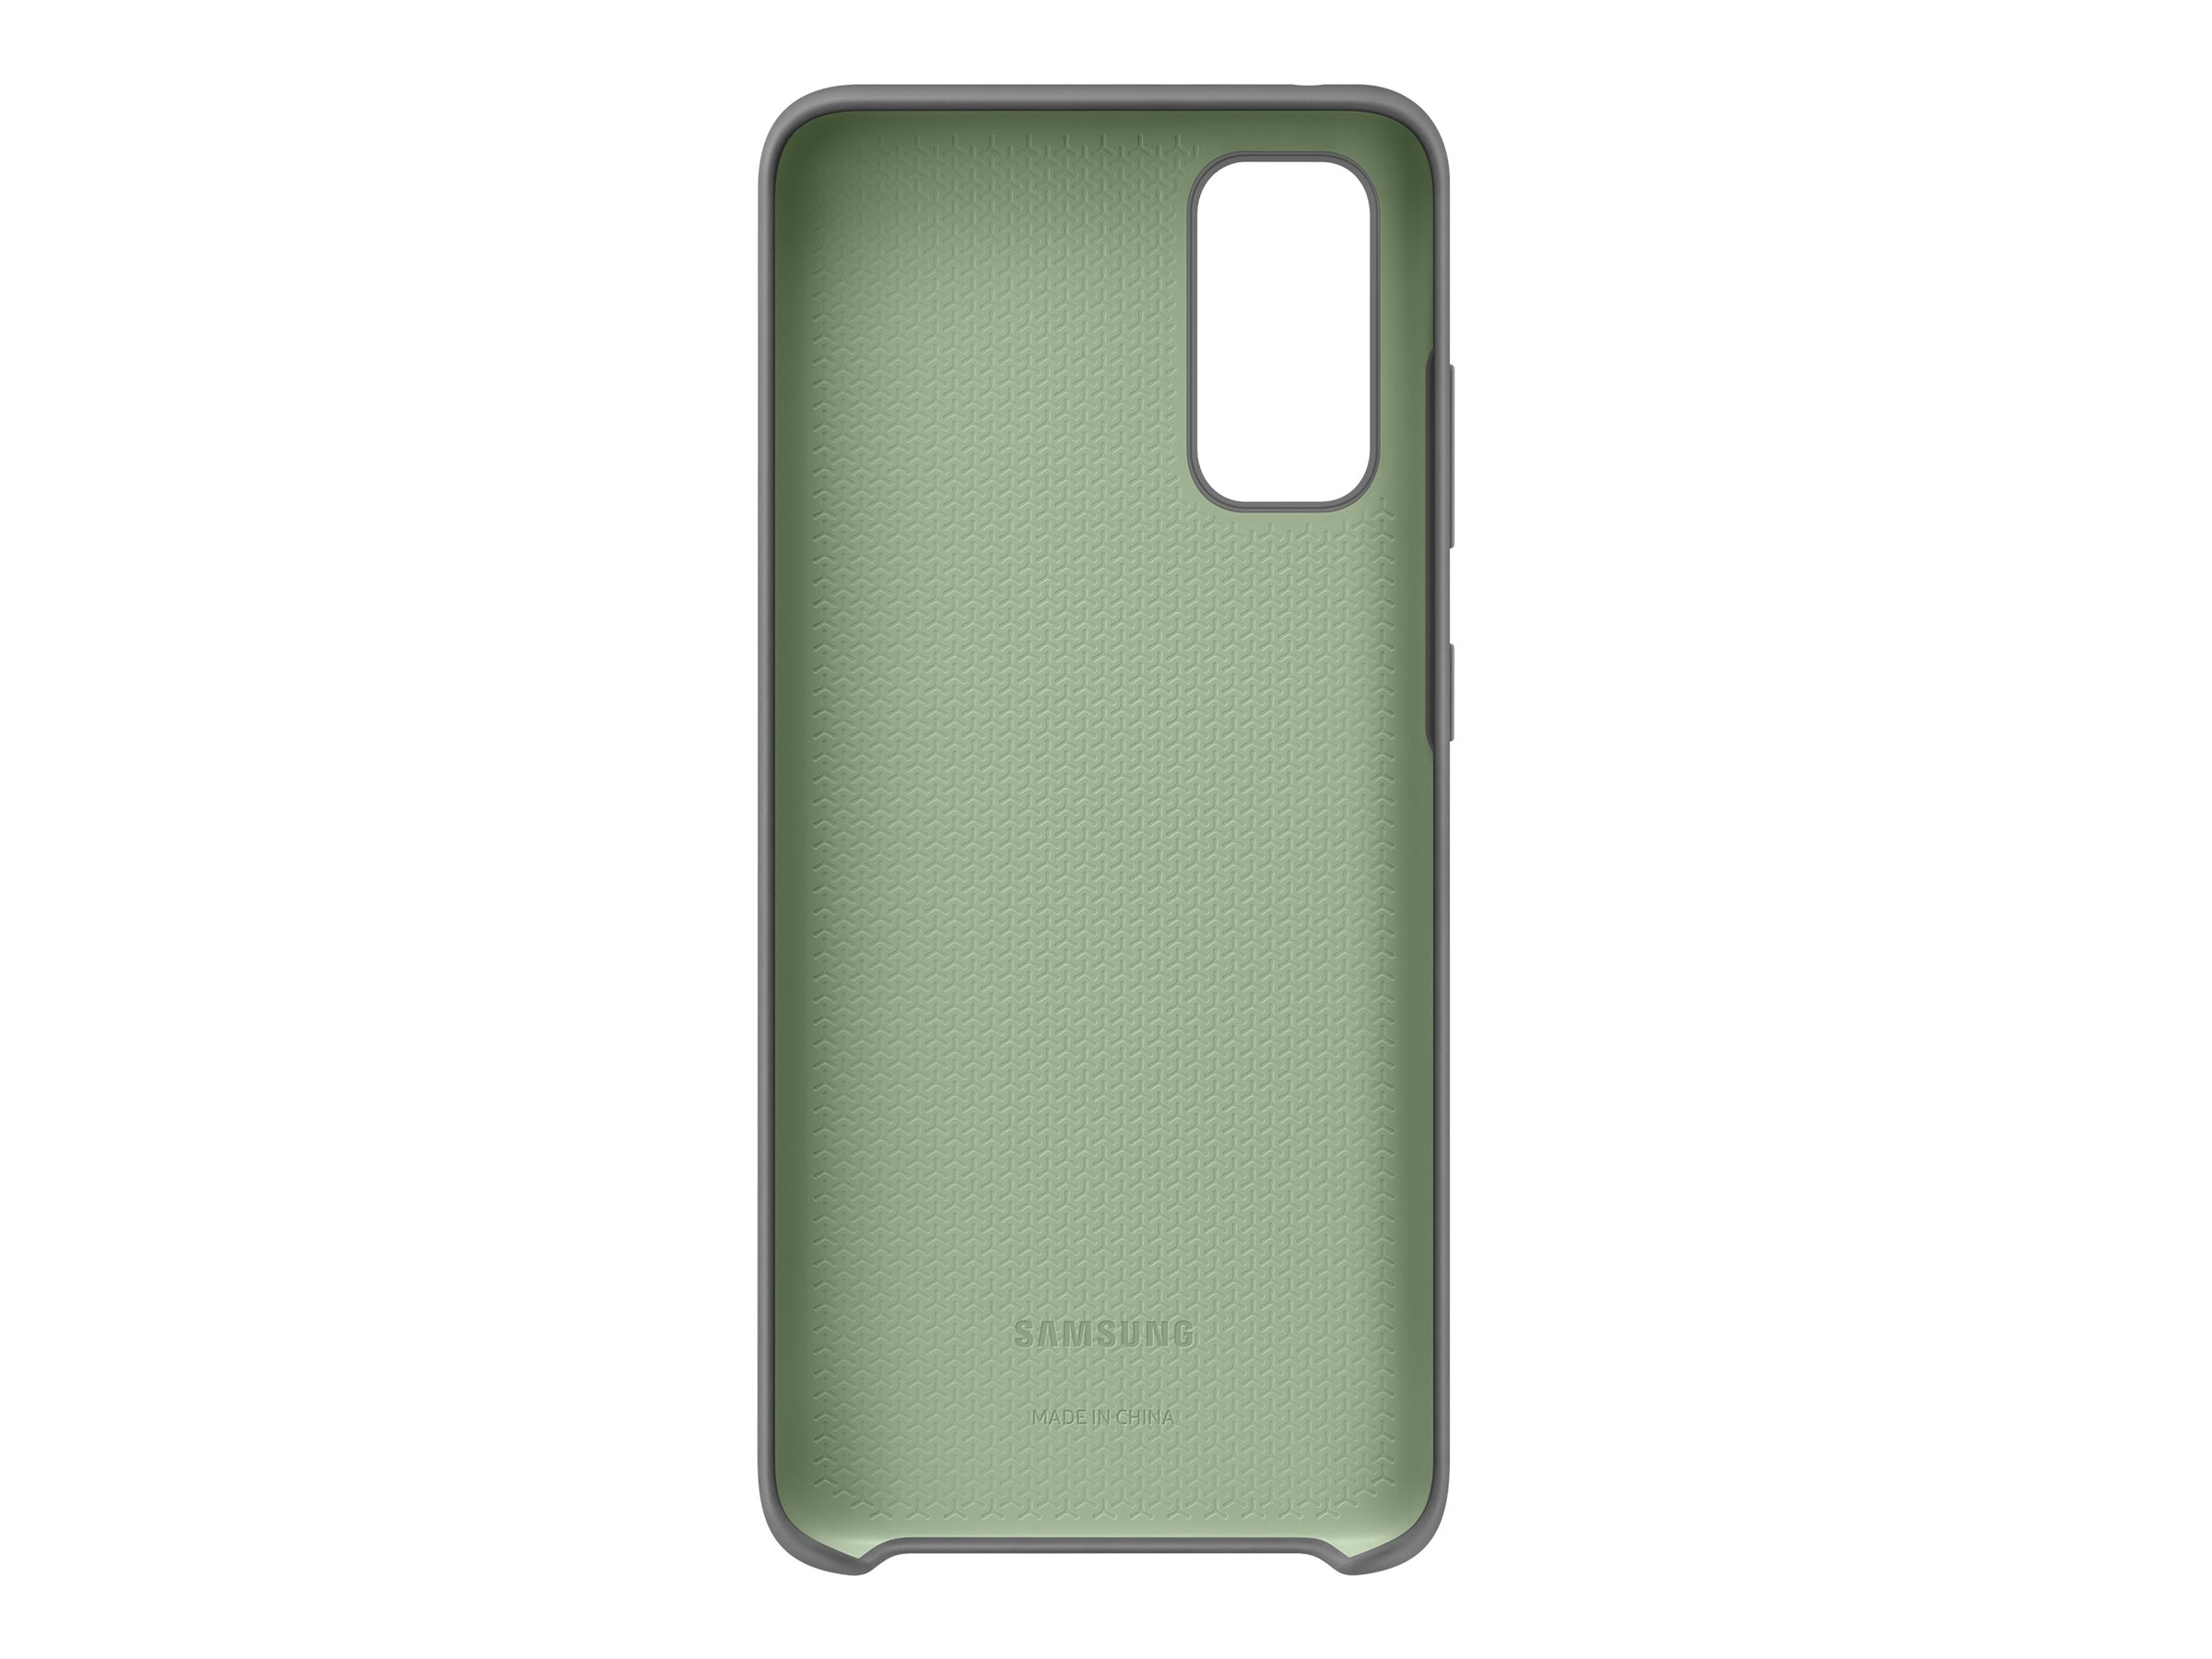 Samsung Silicone Cover EF-PG980 - back cover for cell phone